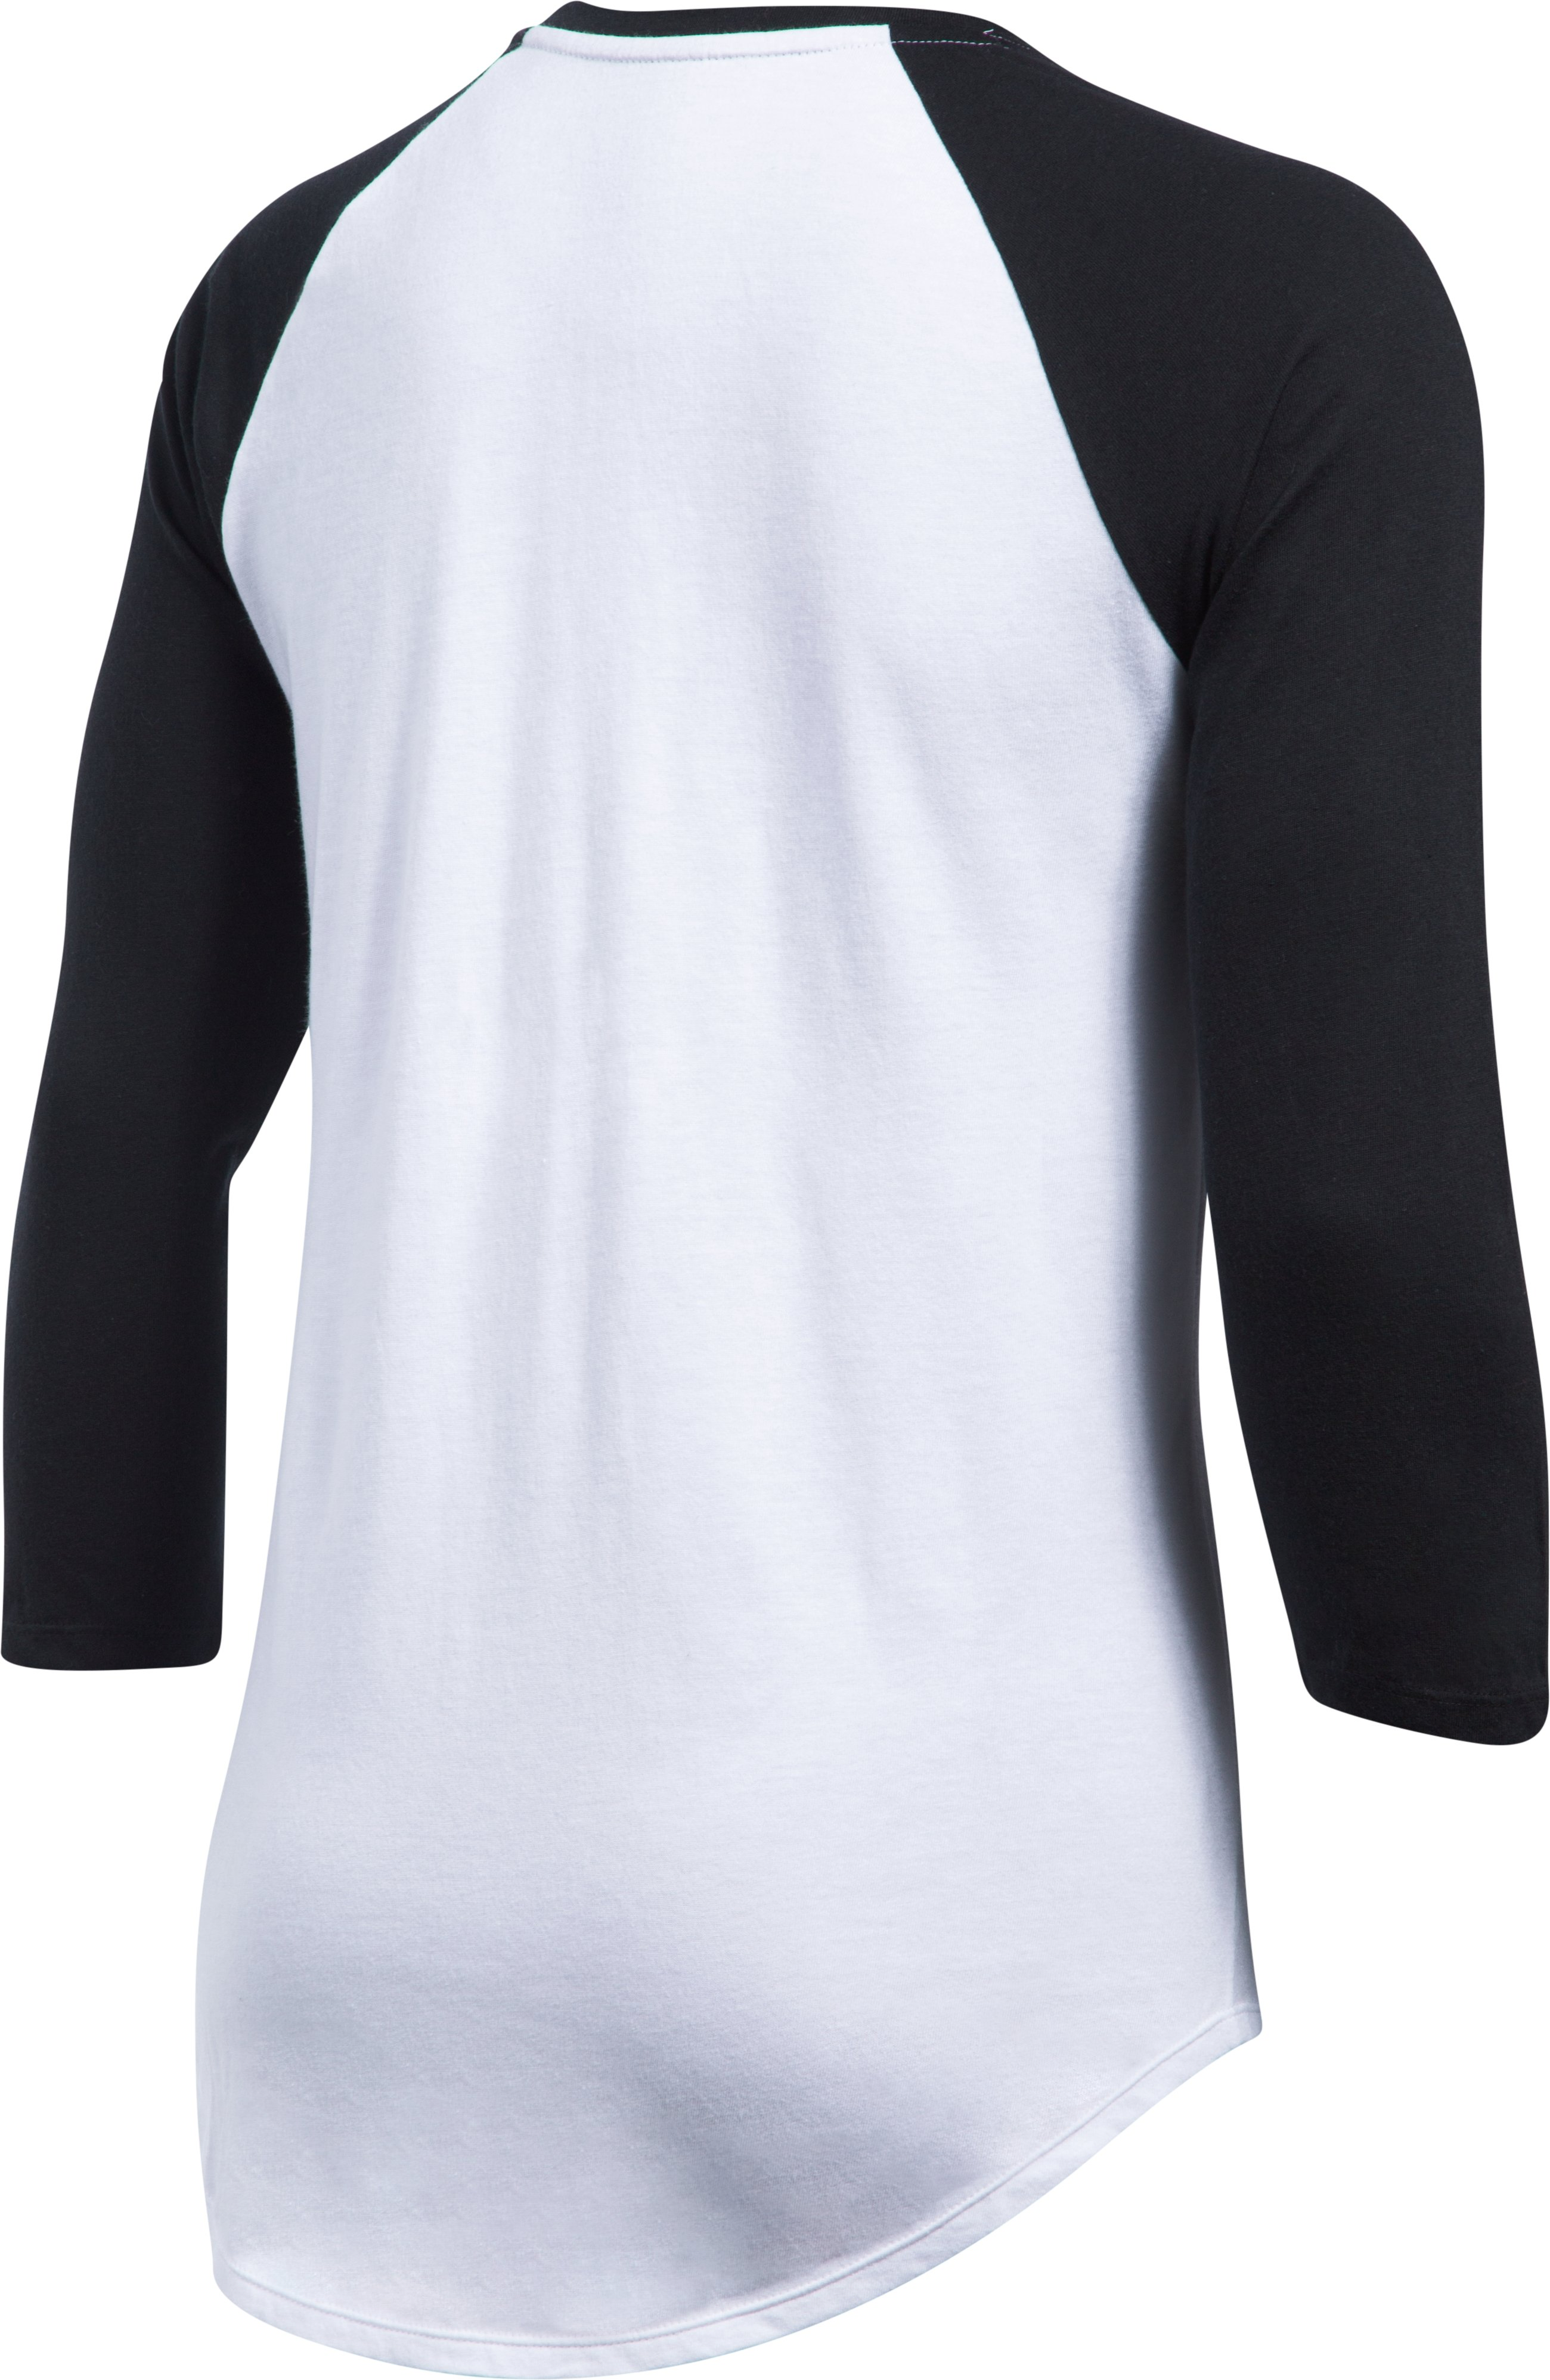 Women's Chicago White Sox ¾ Sleeve T-Shirt, Black , undefined